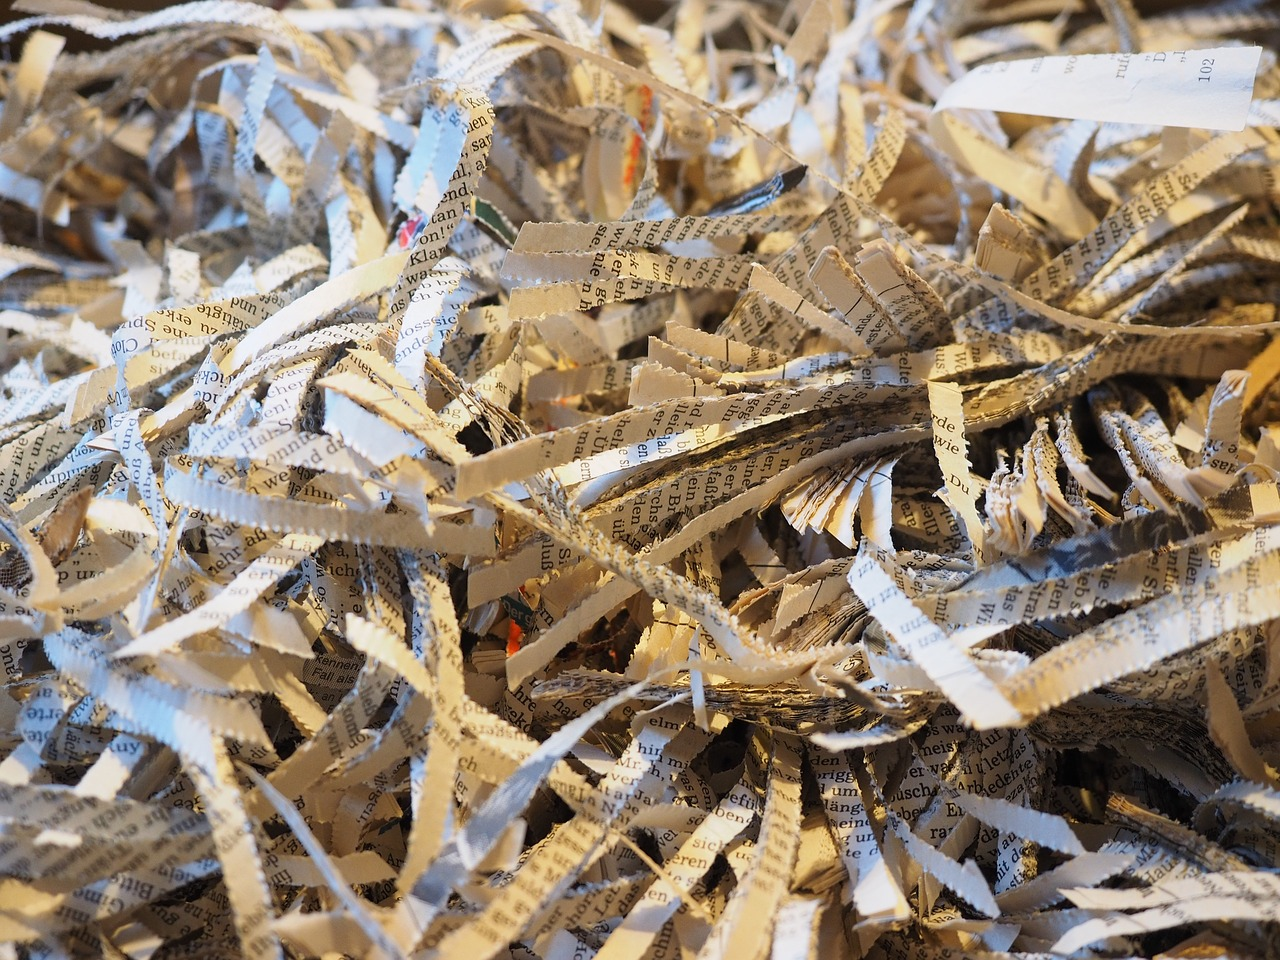 upcoming shredding and recycling events